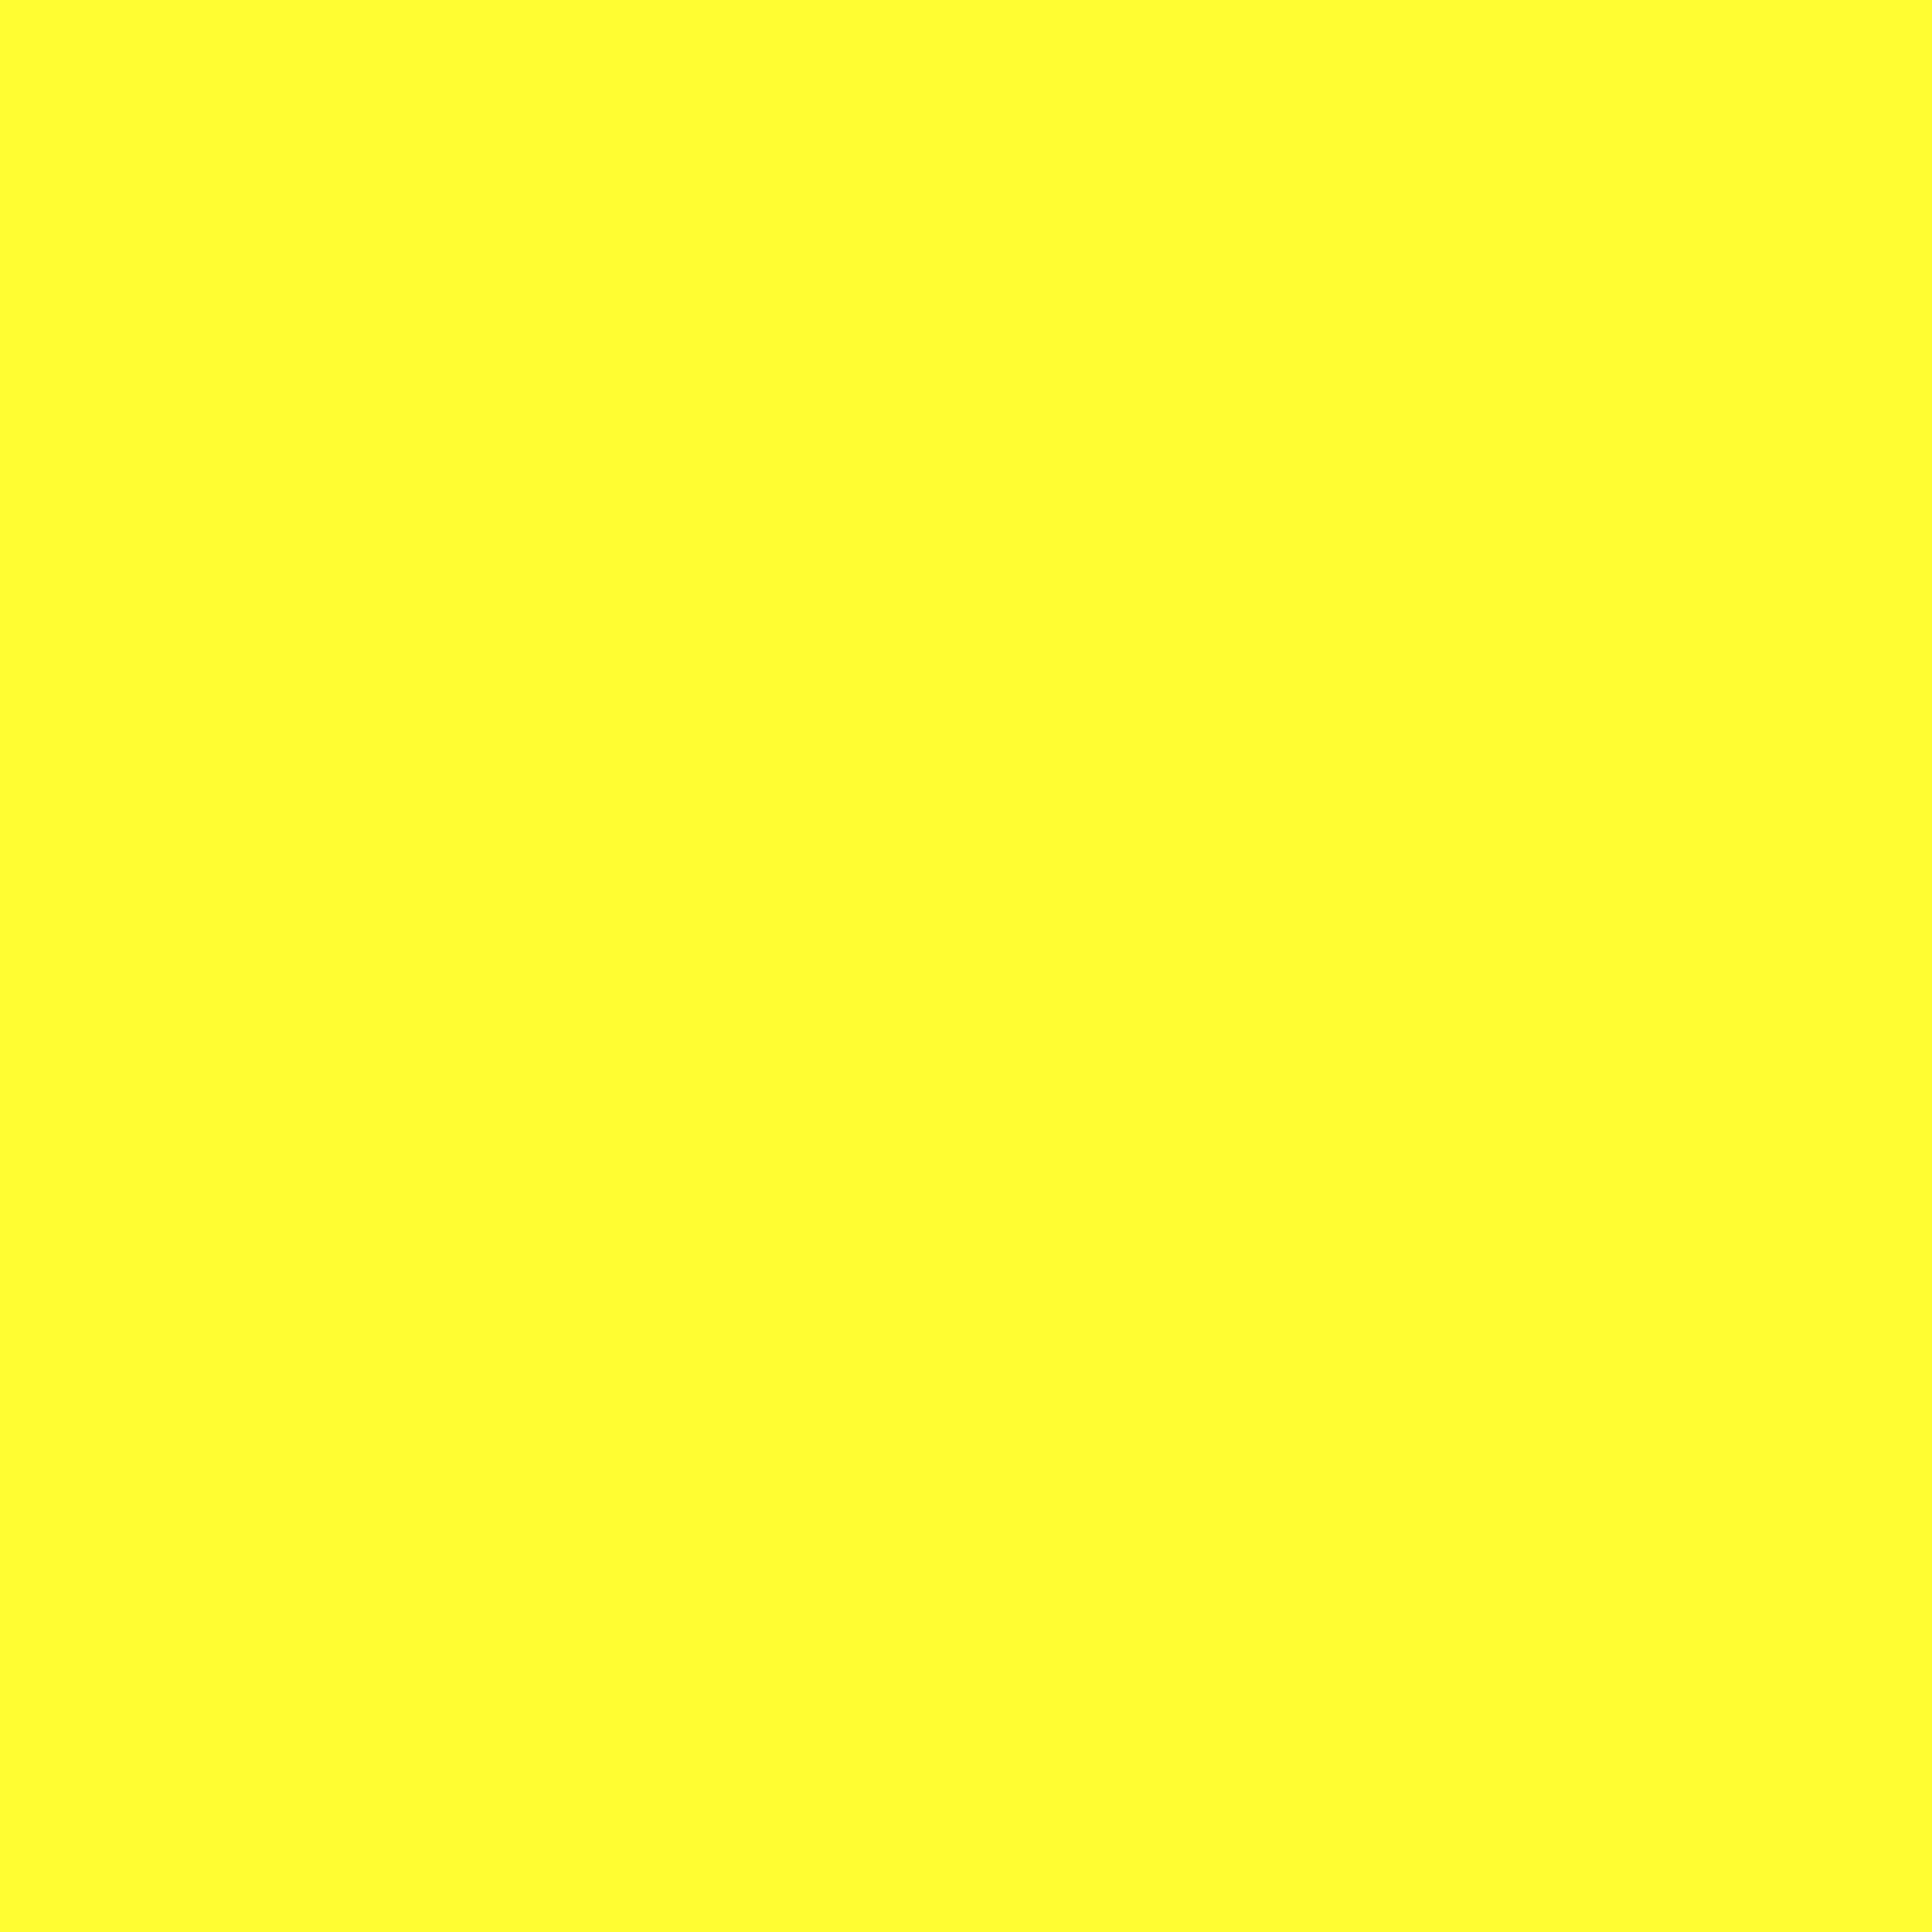 3600x3600 Yellow RYB Solid Color Background